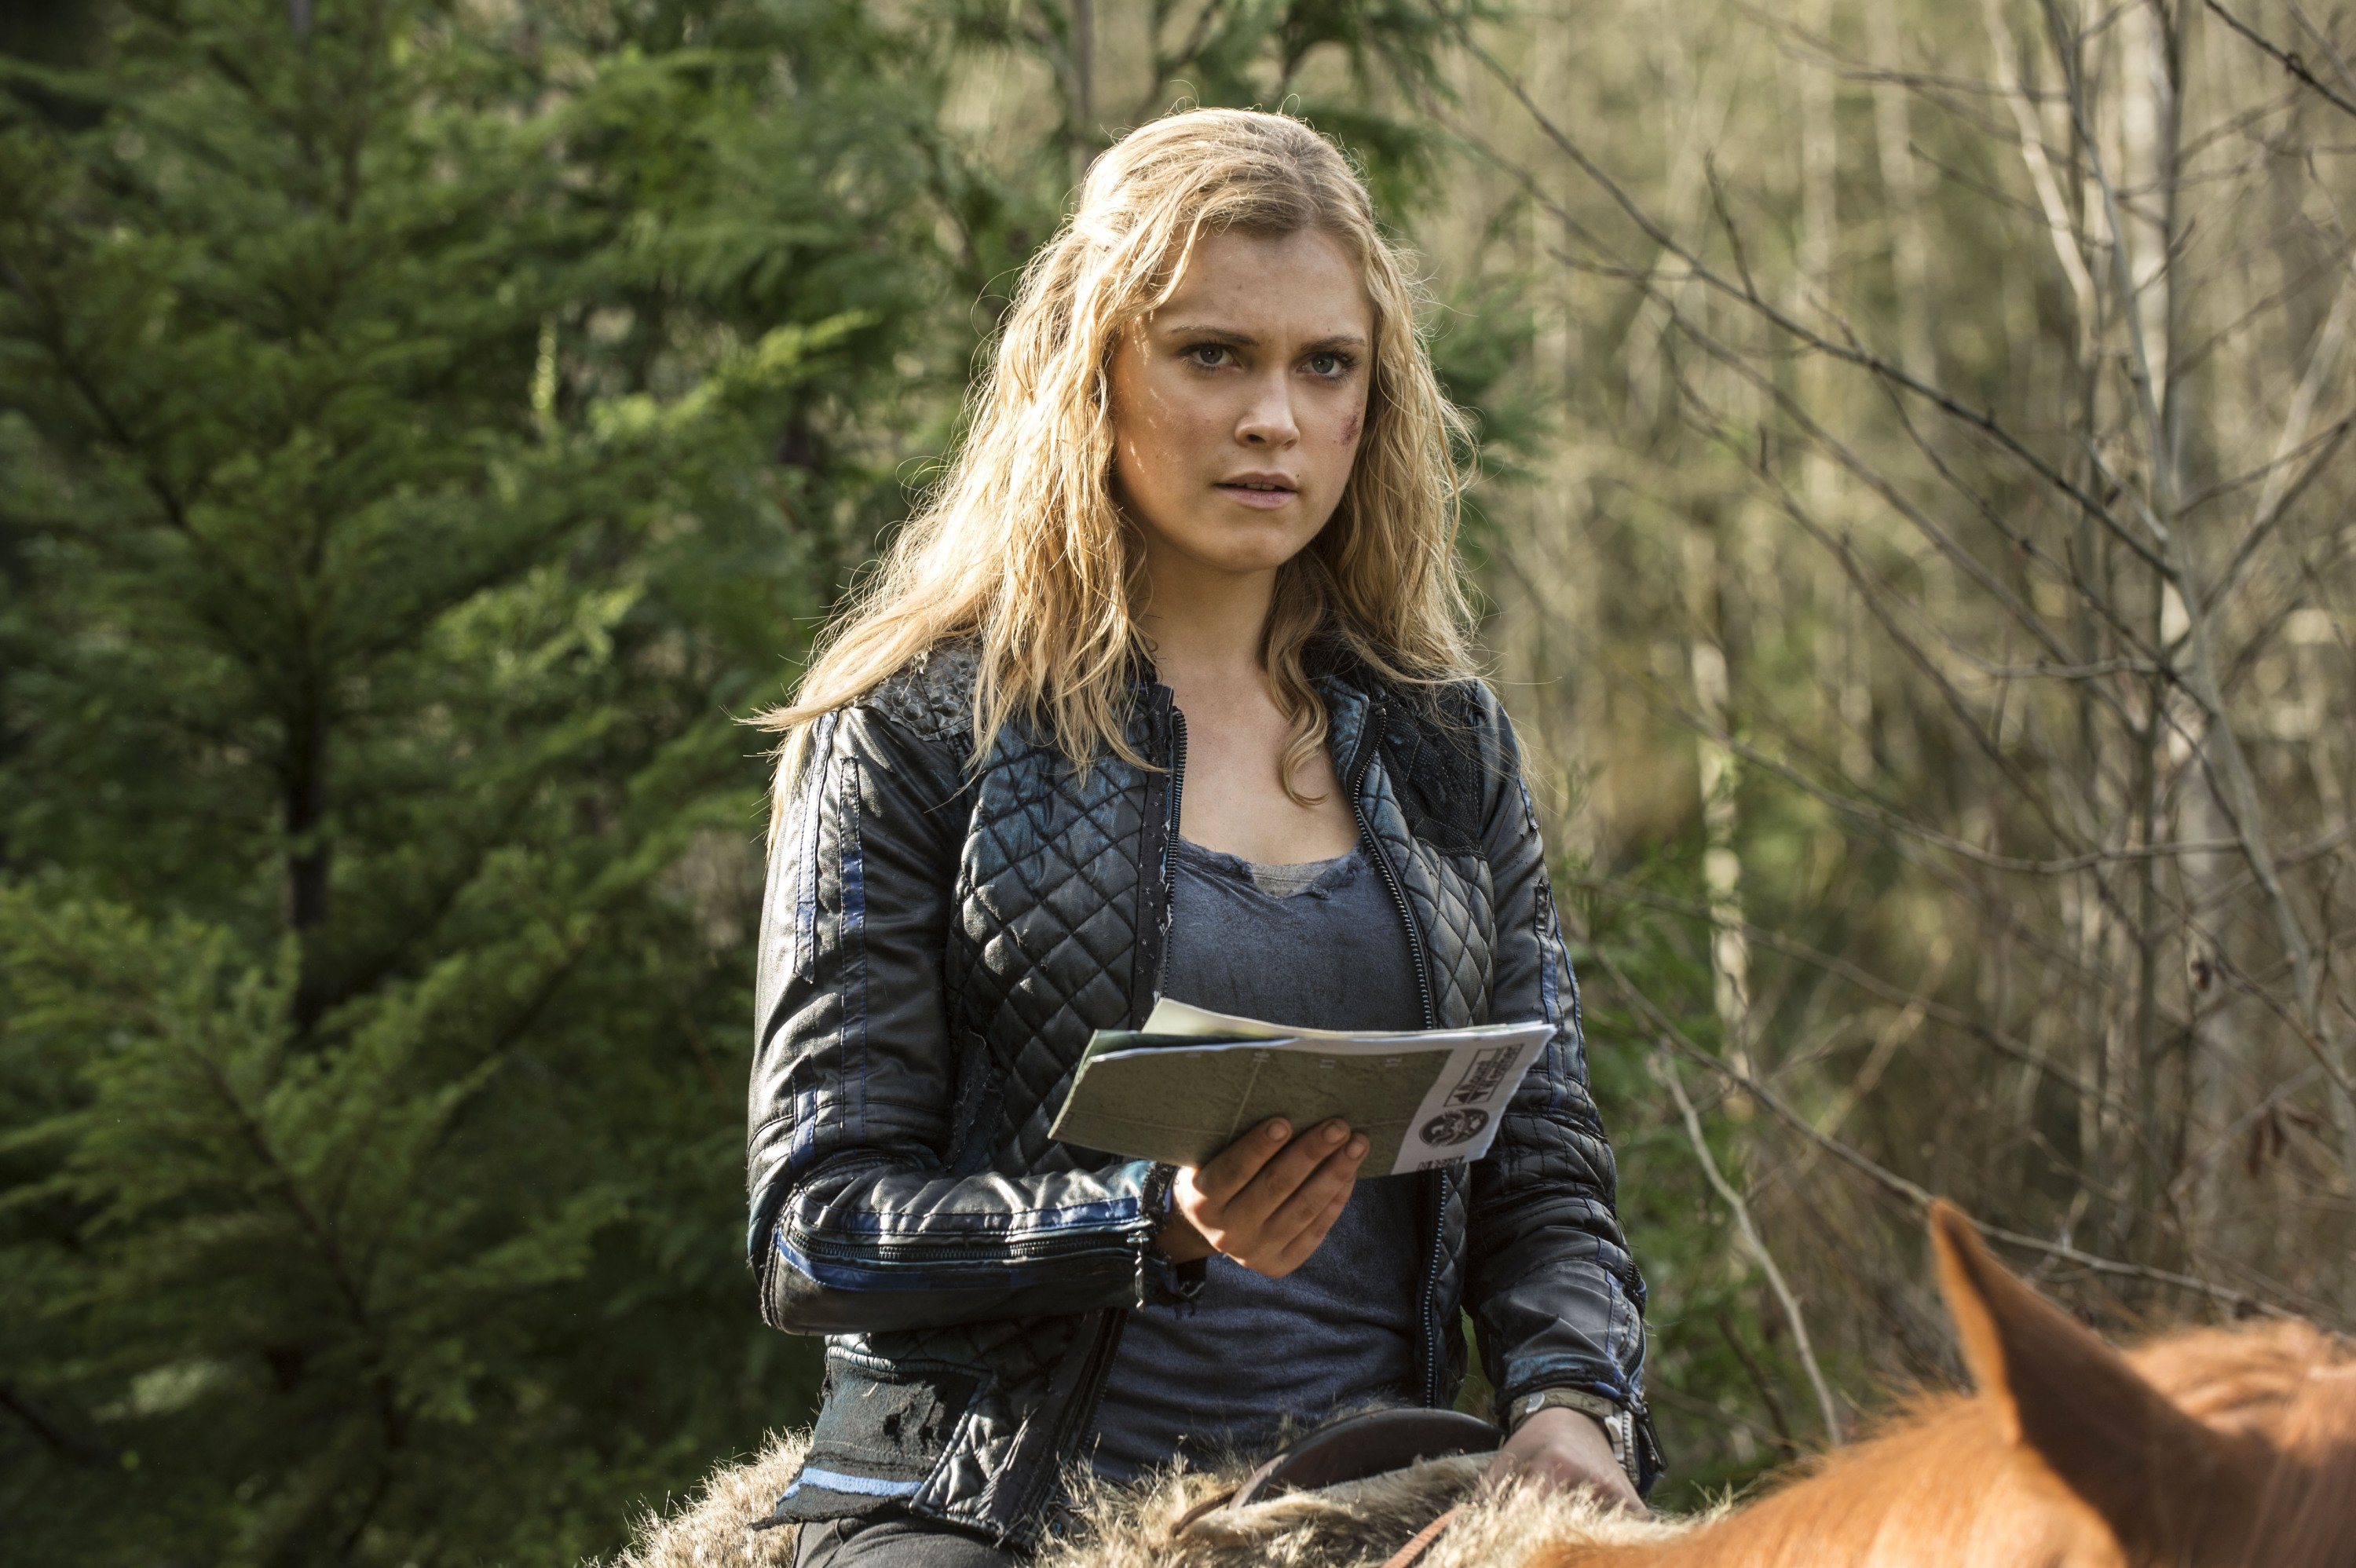 Clarke Griffin S Bomber Jacket The 100